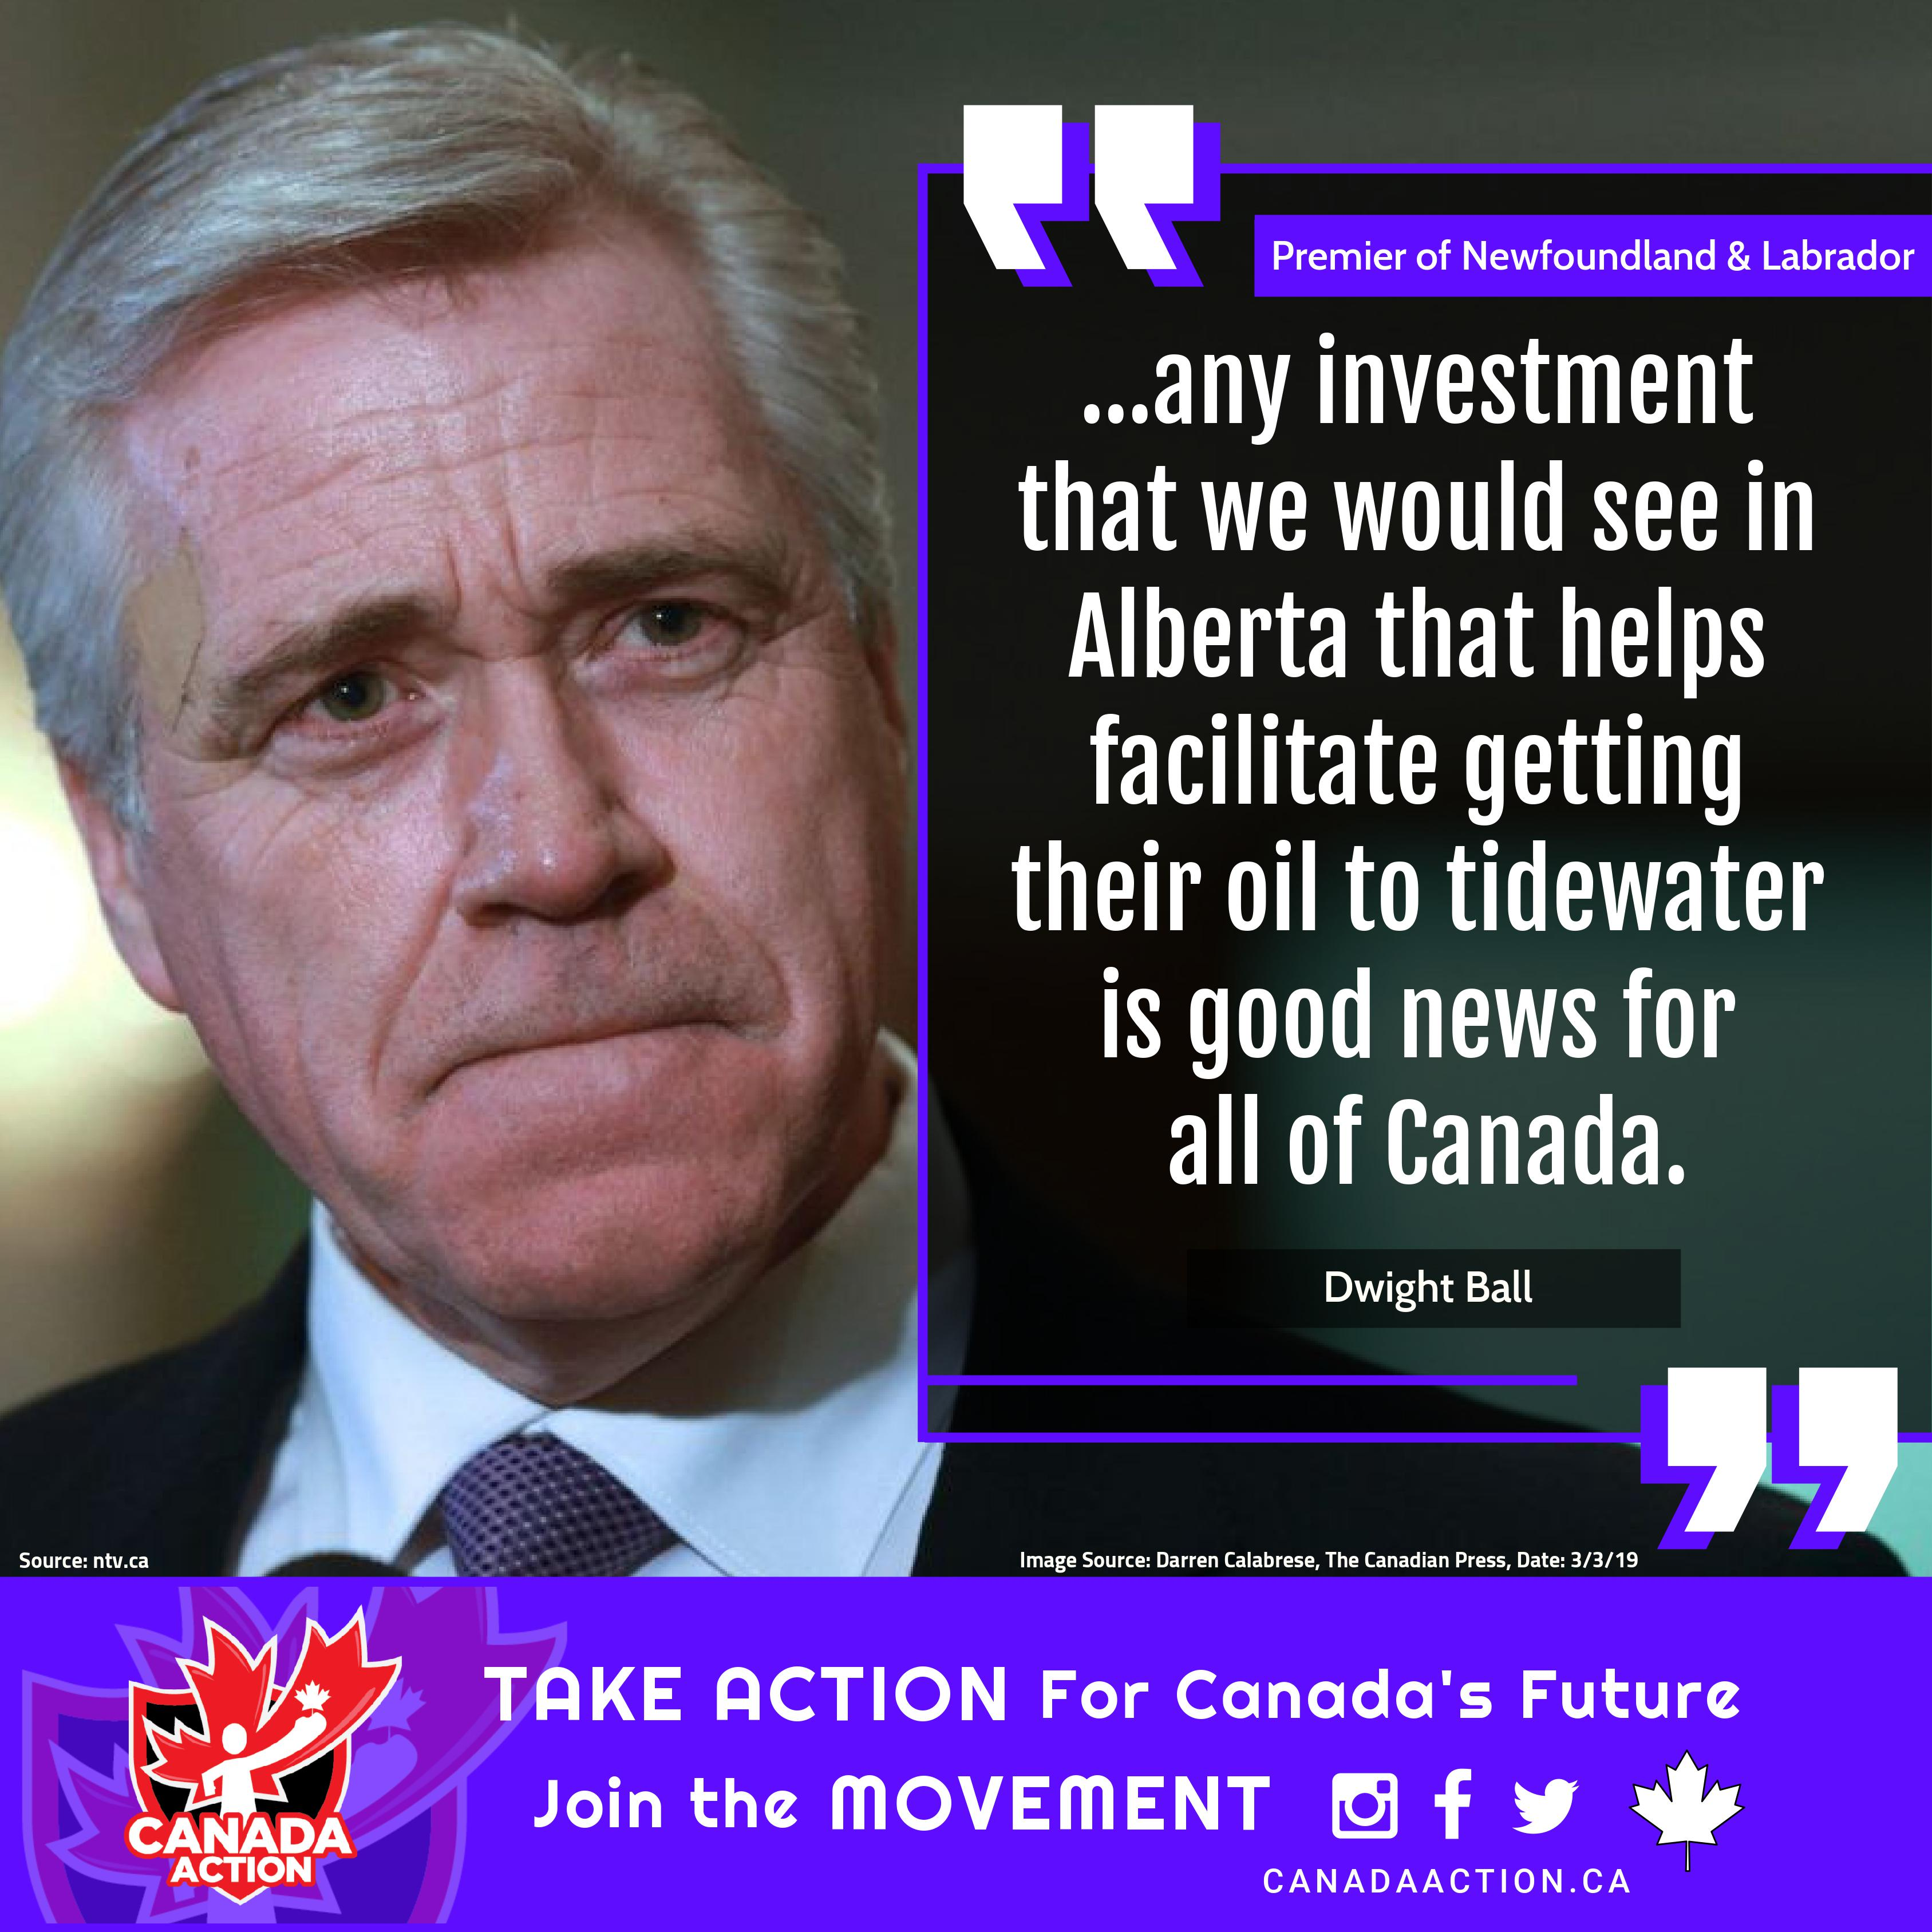 Dwight Ball, Premier of Newfoundland & Labrador, supports the Trans Mountain pipeline expansion